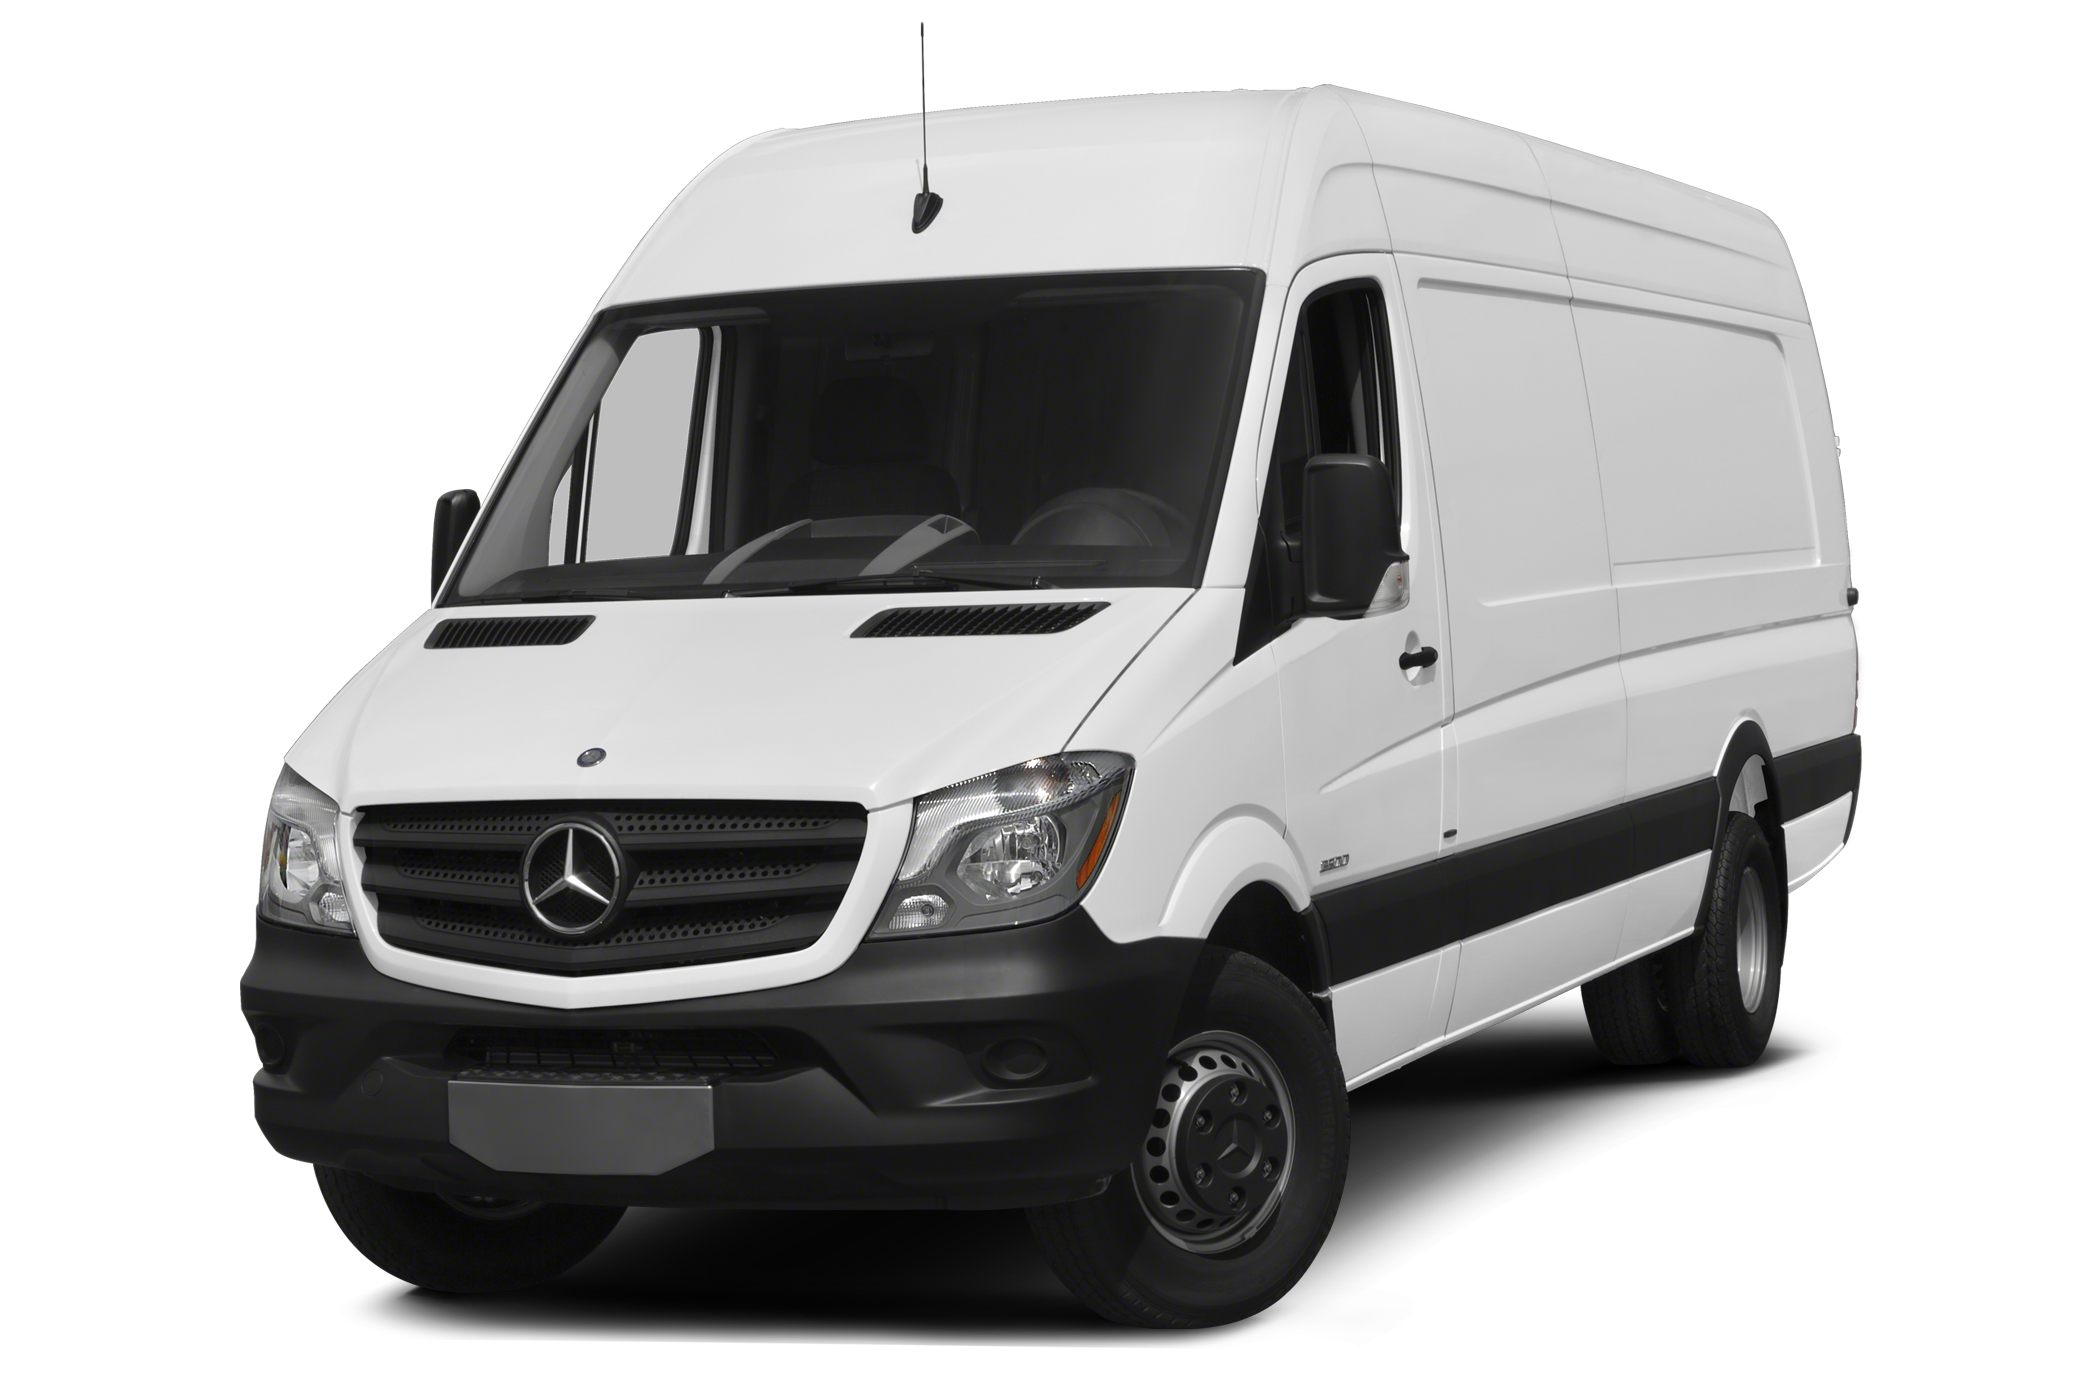 2003 2006 Dodge Sprinter Pre Owned Truck Trend